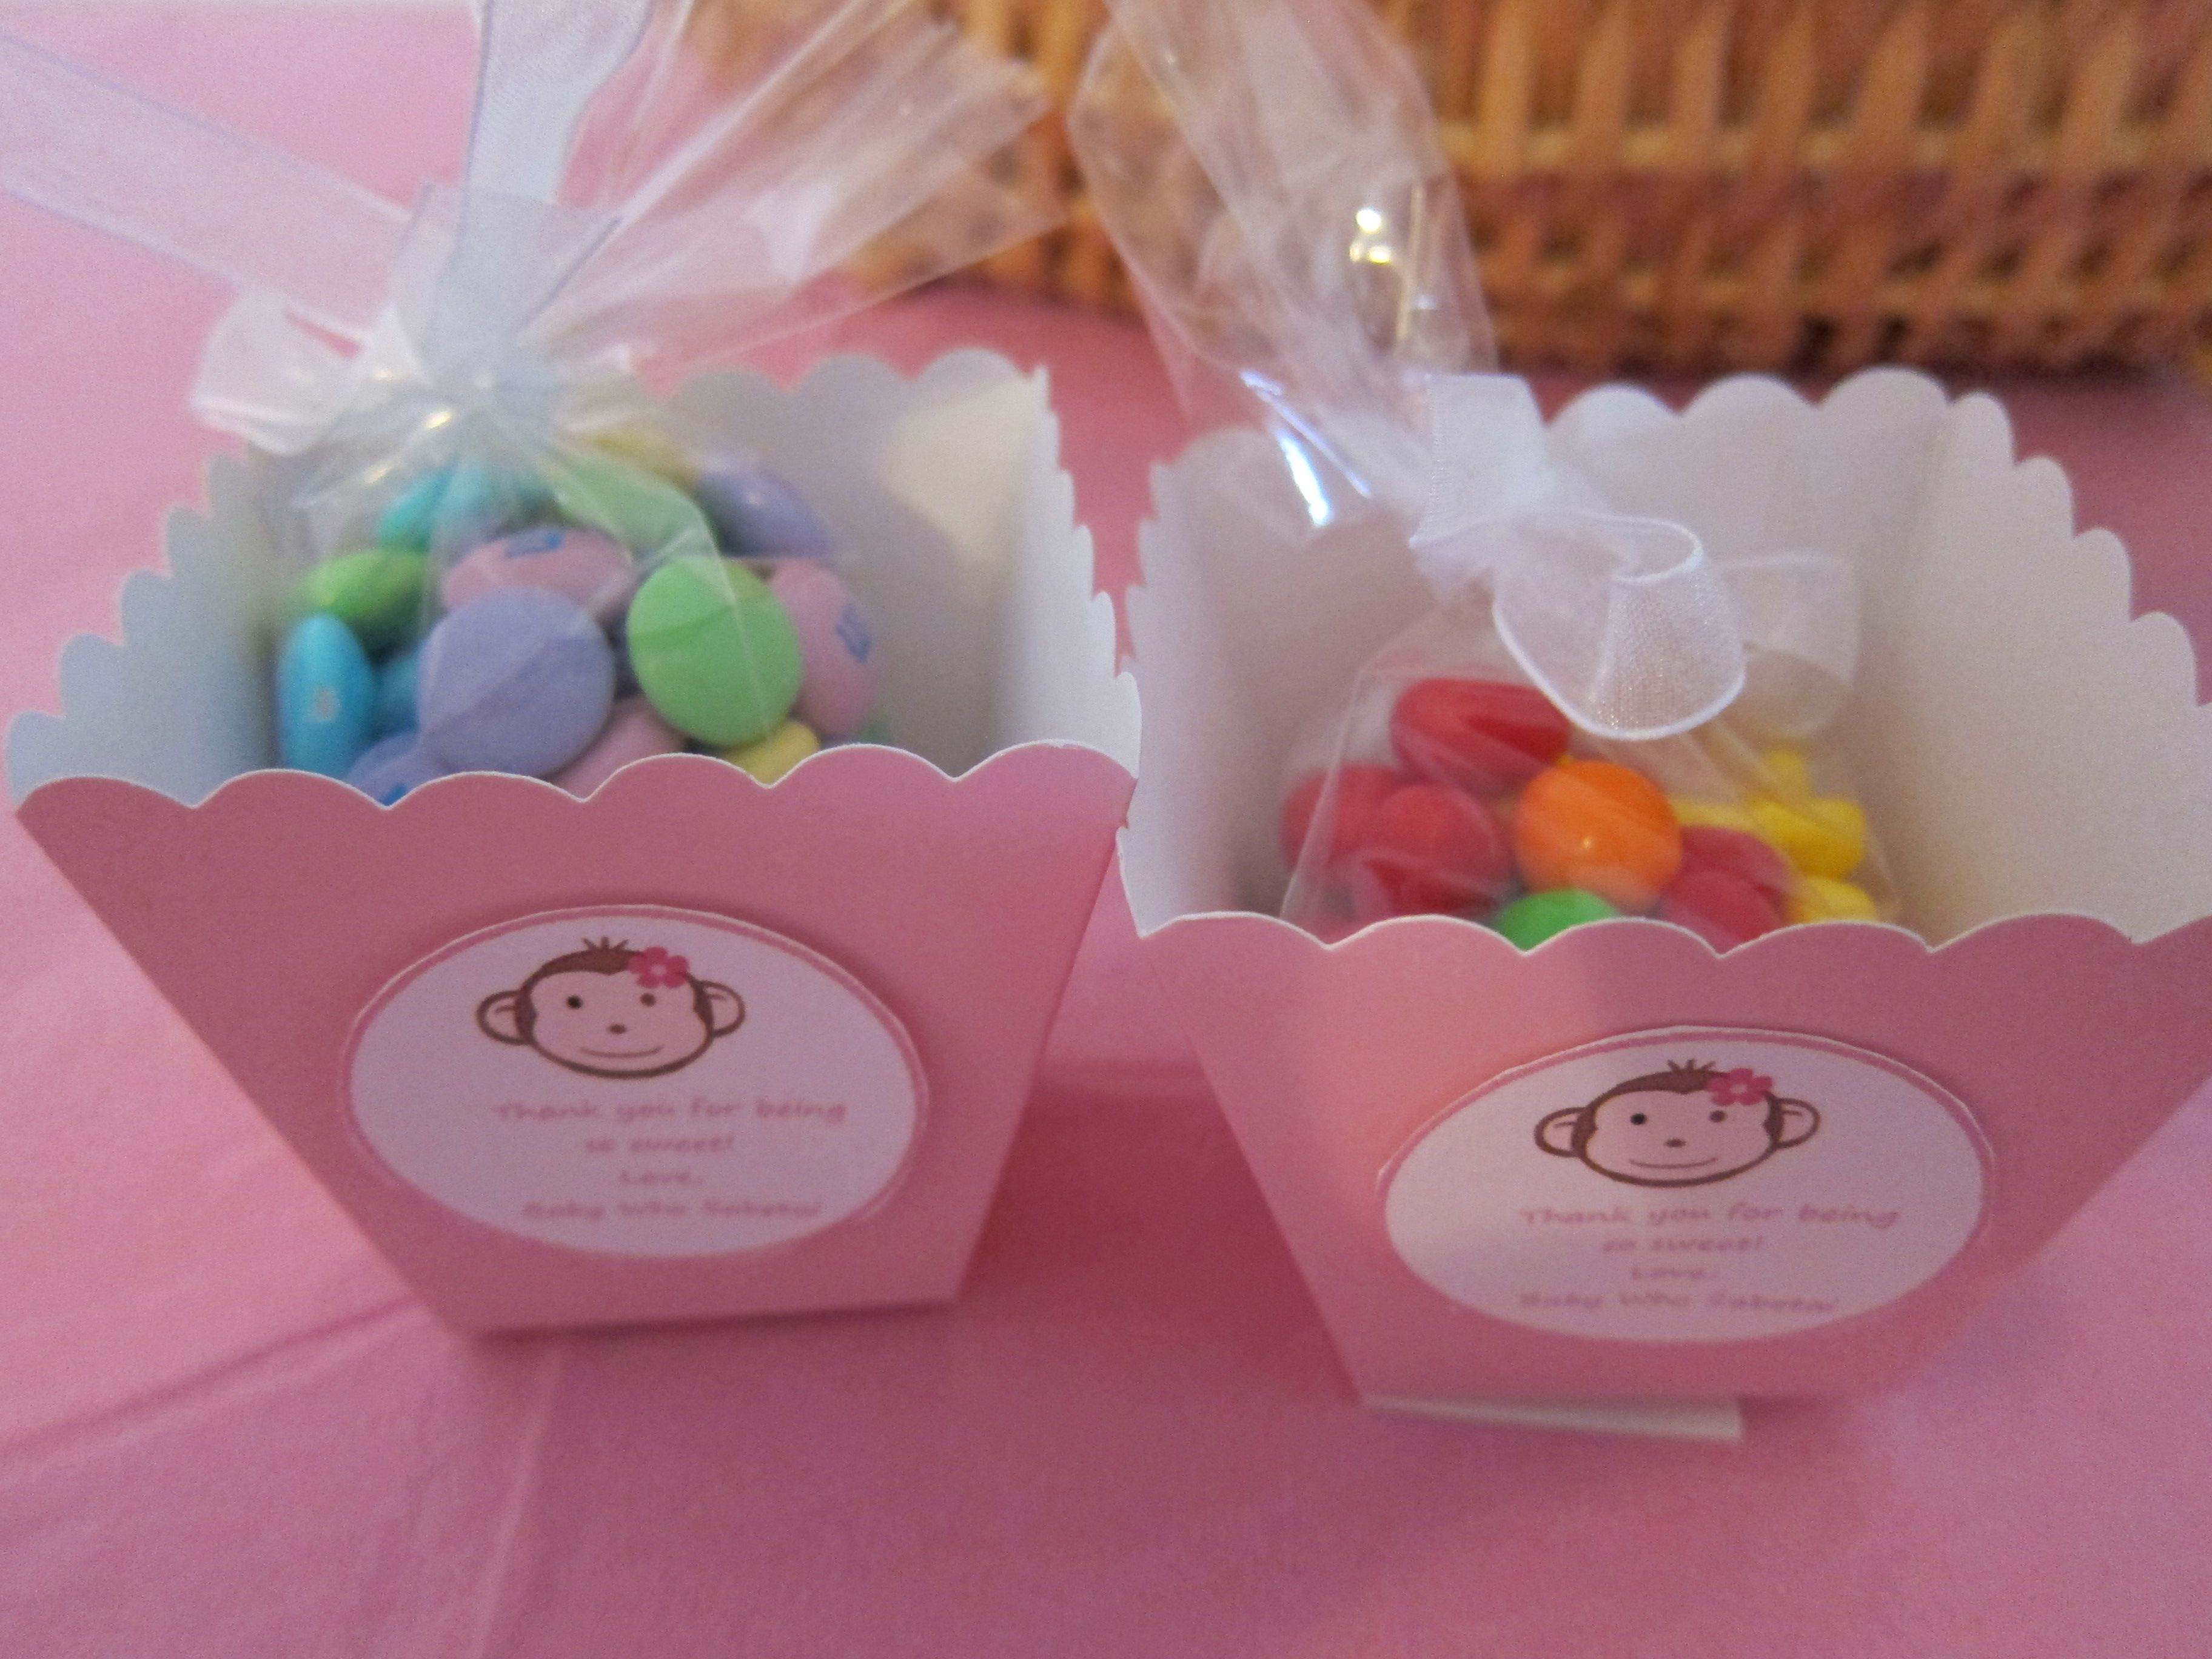 Baby shower favors with Runts and pastel M&Ms - Runts to fit the ...